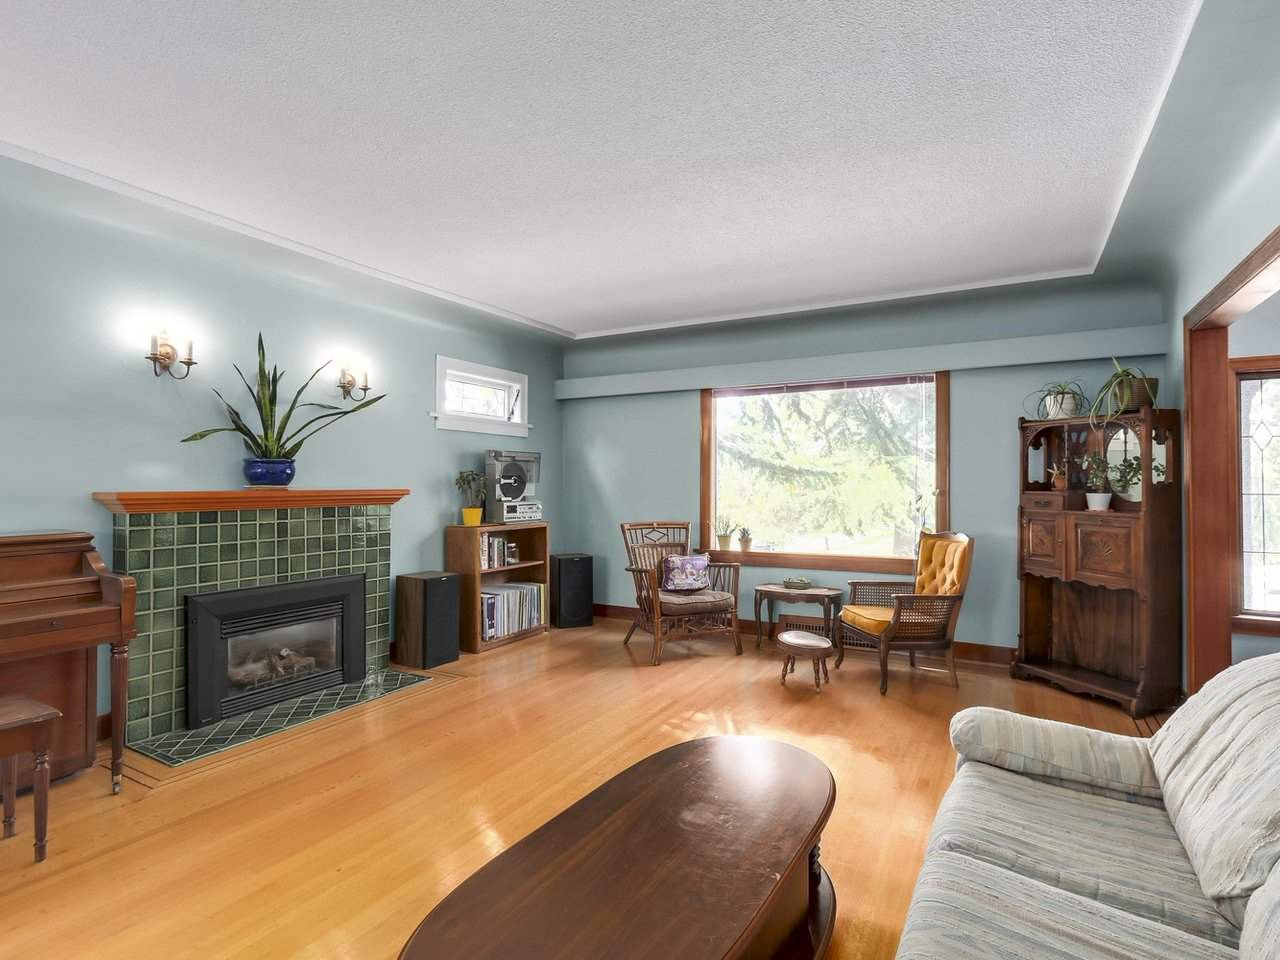 Main Photo: 4276 WALLACE Street in Vancouver: Dunbar House for sale (Vancouver West)  : MLS®# R2348266